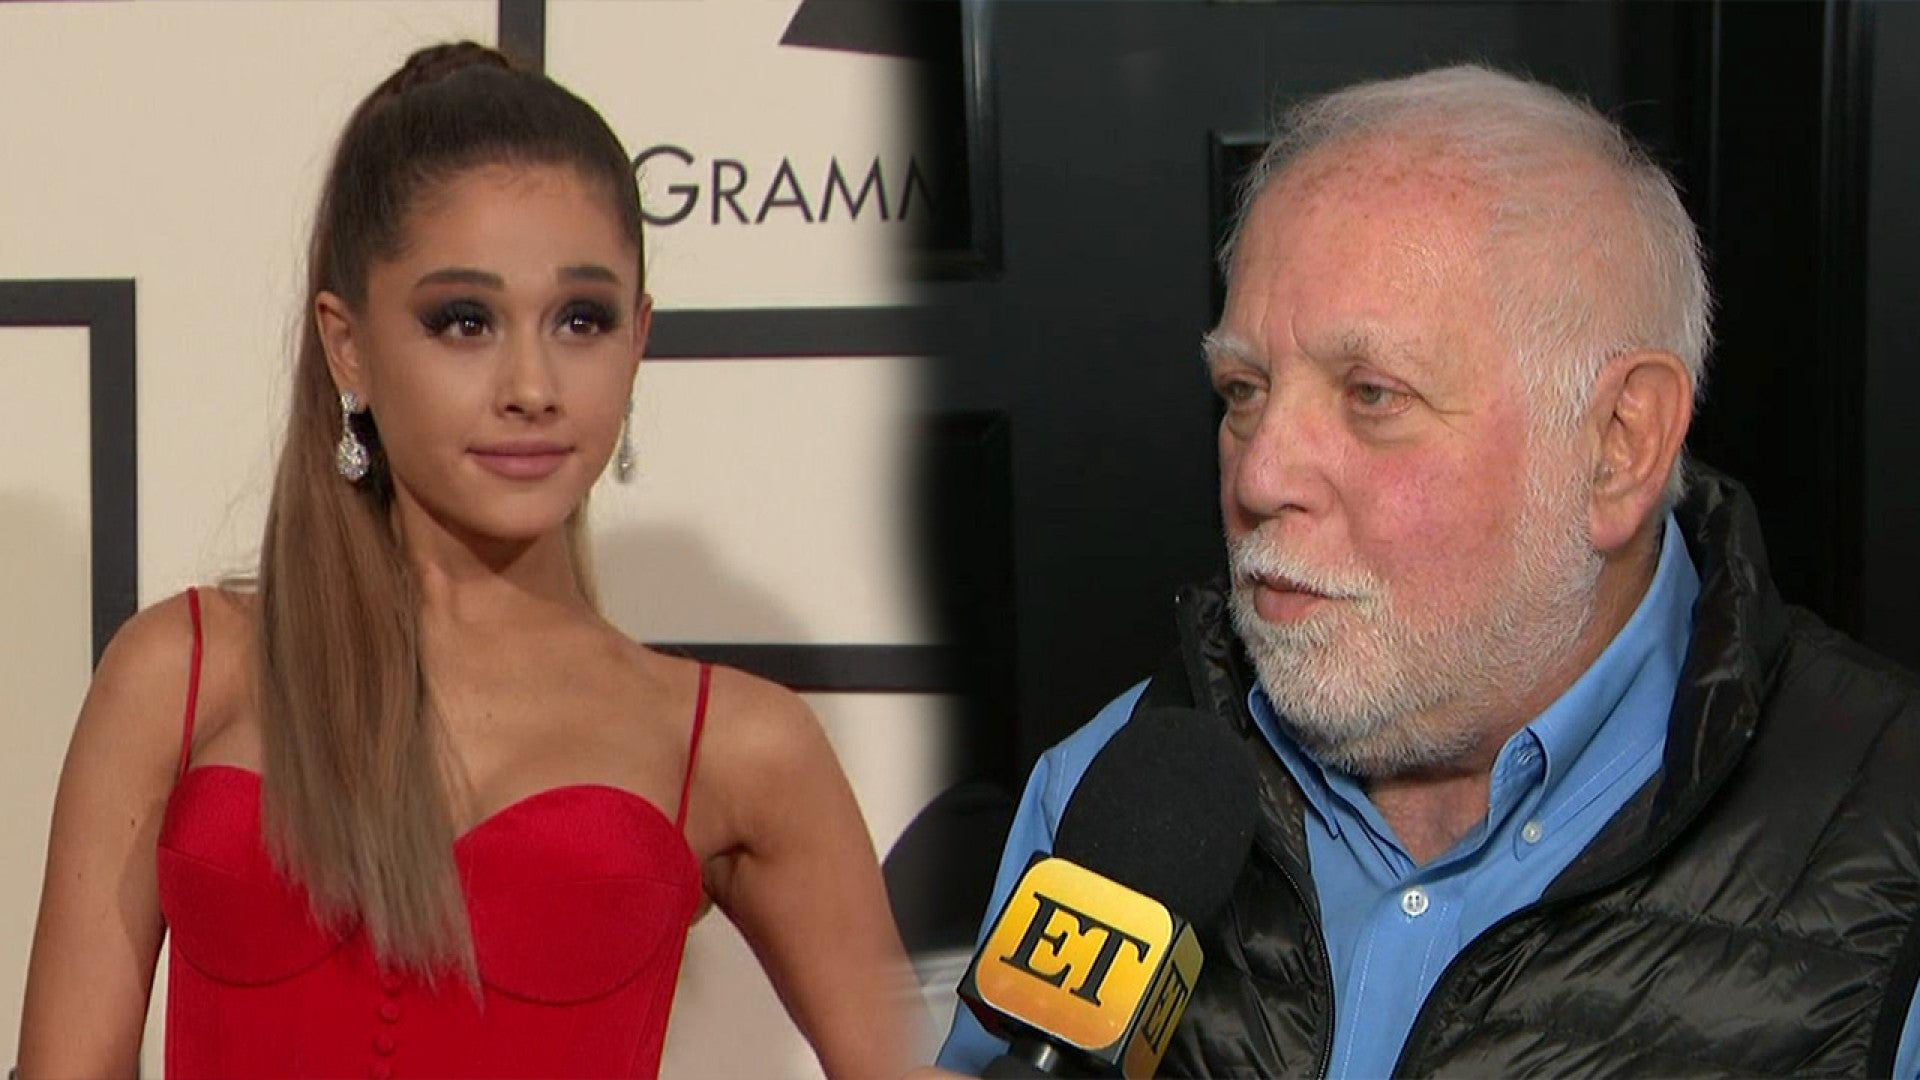 ariana grande reveals who she wants to bring to the grammys after scoring 5 nominations entertainment tonight ariana grande reveals who she wants to